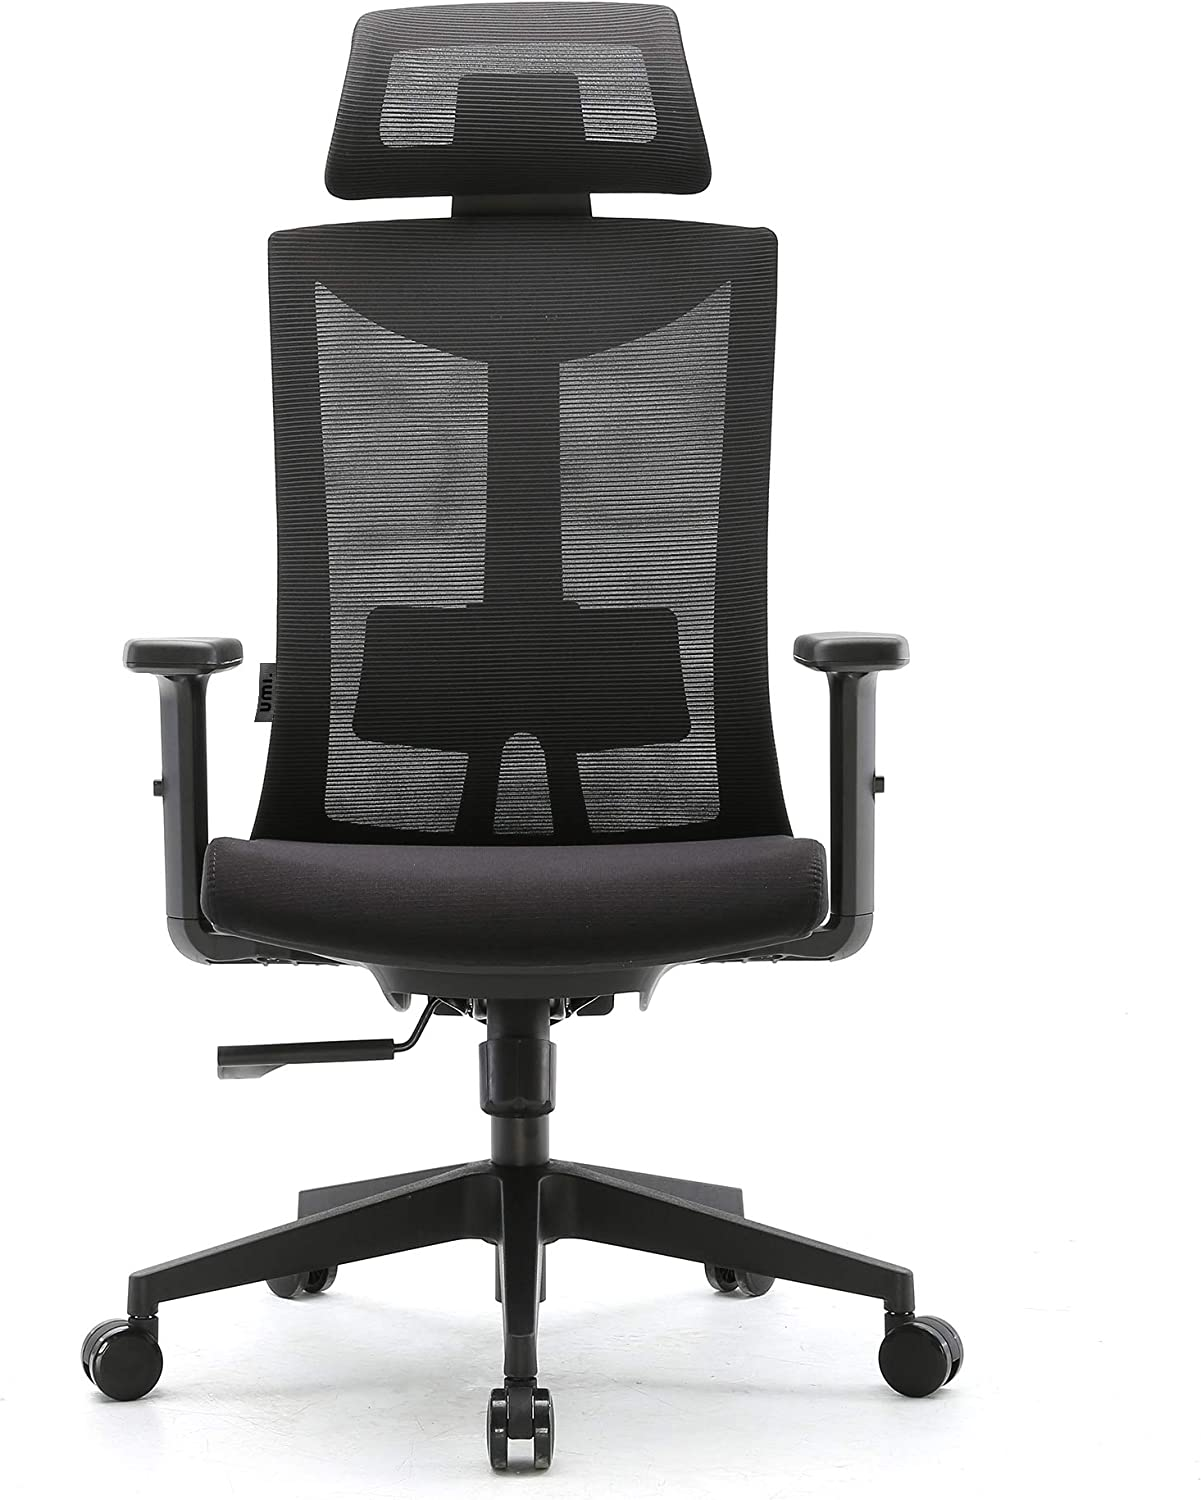 Amazon Brand - Umi Ergonomic office chair, Swivelling Mesh Computer Chair with Adjustable Lumbar Support and PU Armrests, Breathable Mesh Back and Padded Seat Desk Chair for work, 150 kg Max Load